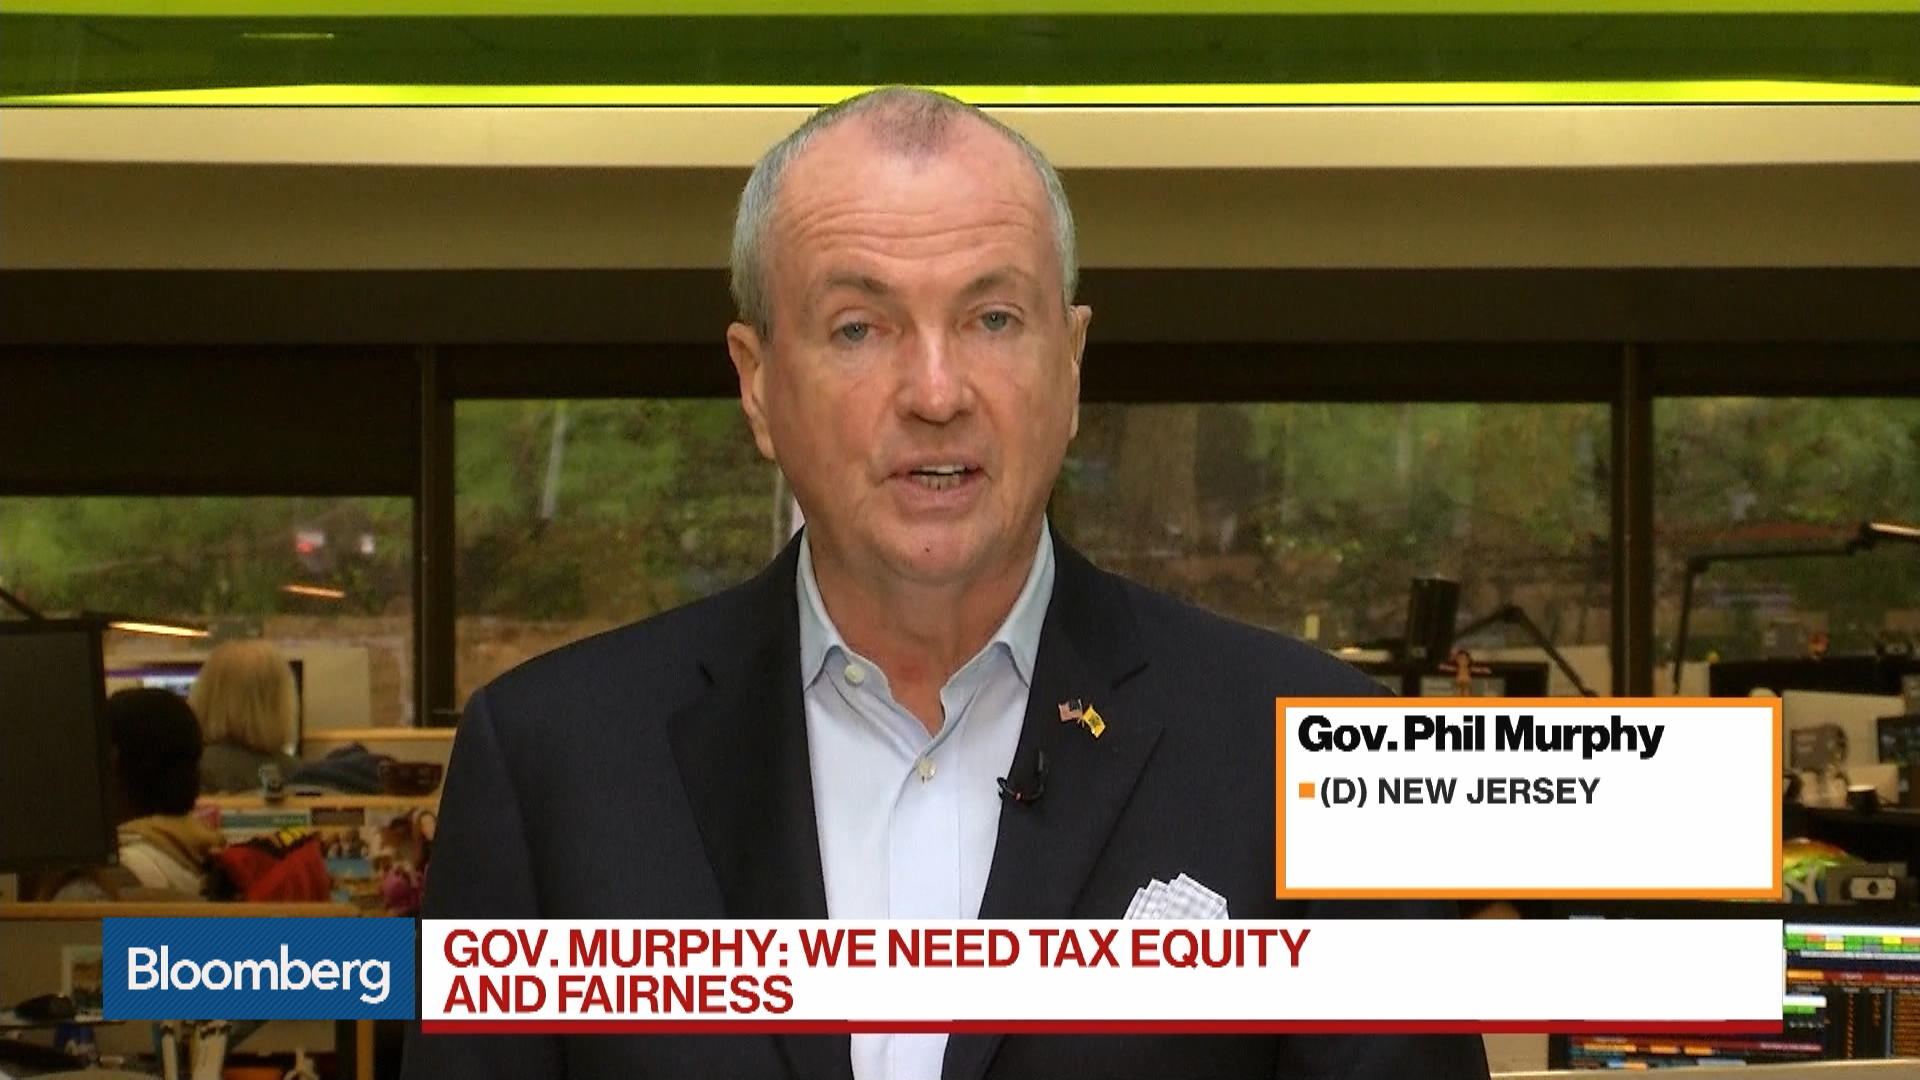 Trump 'Weaponized' Tax Law Against New Jersey: Governor Phil Murphy